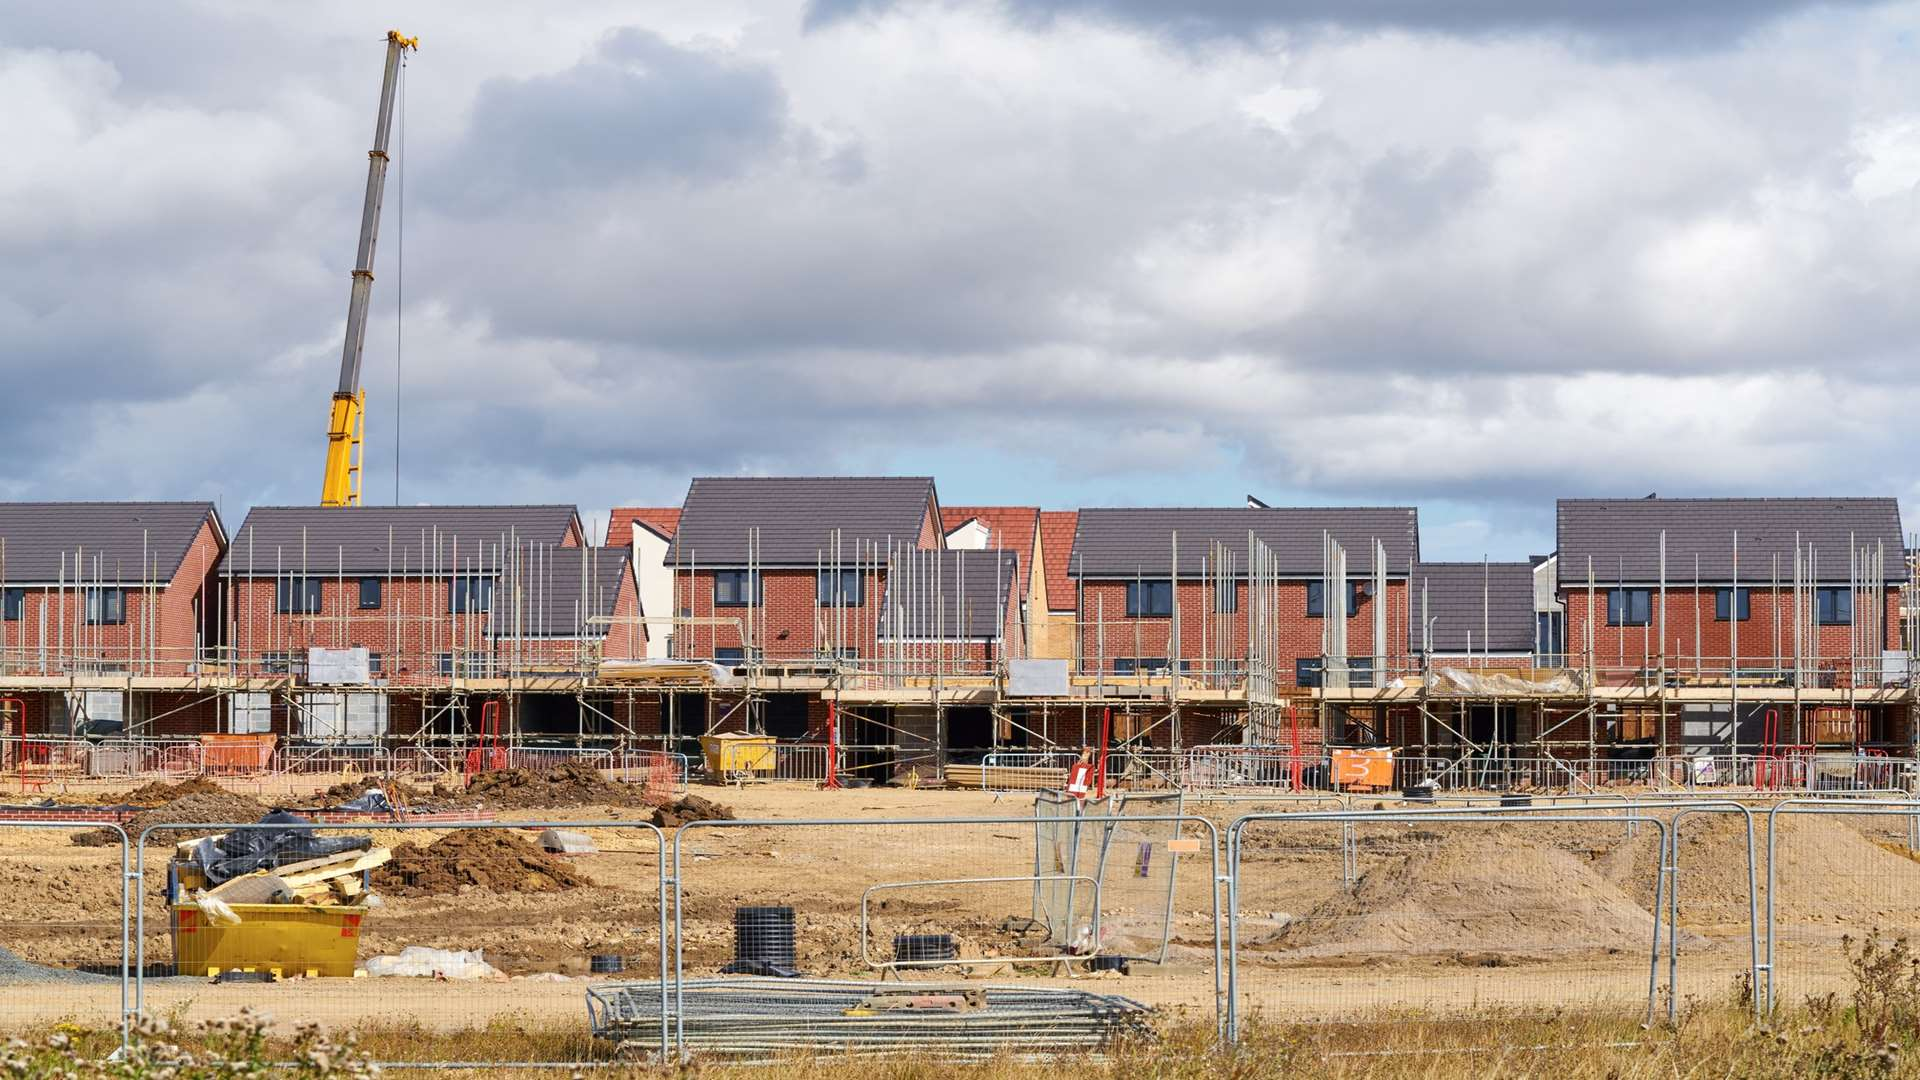 Ashford Borough Council had the biggest year-on-year fall for the number of dwellings completed